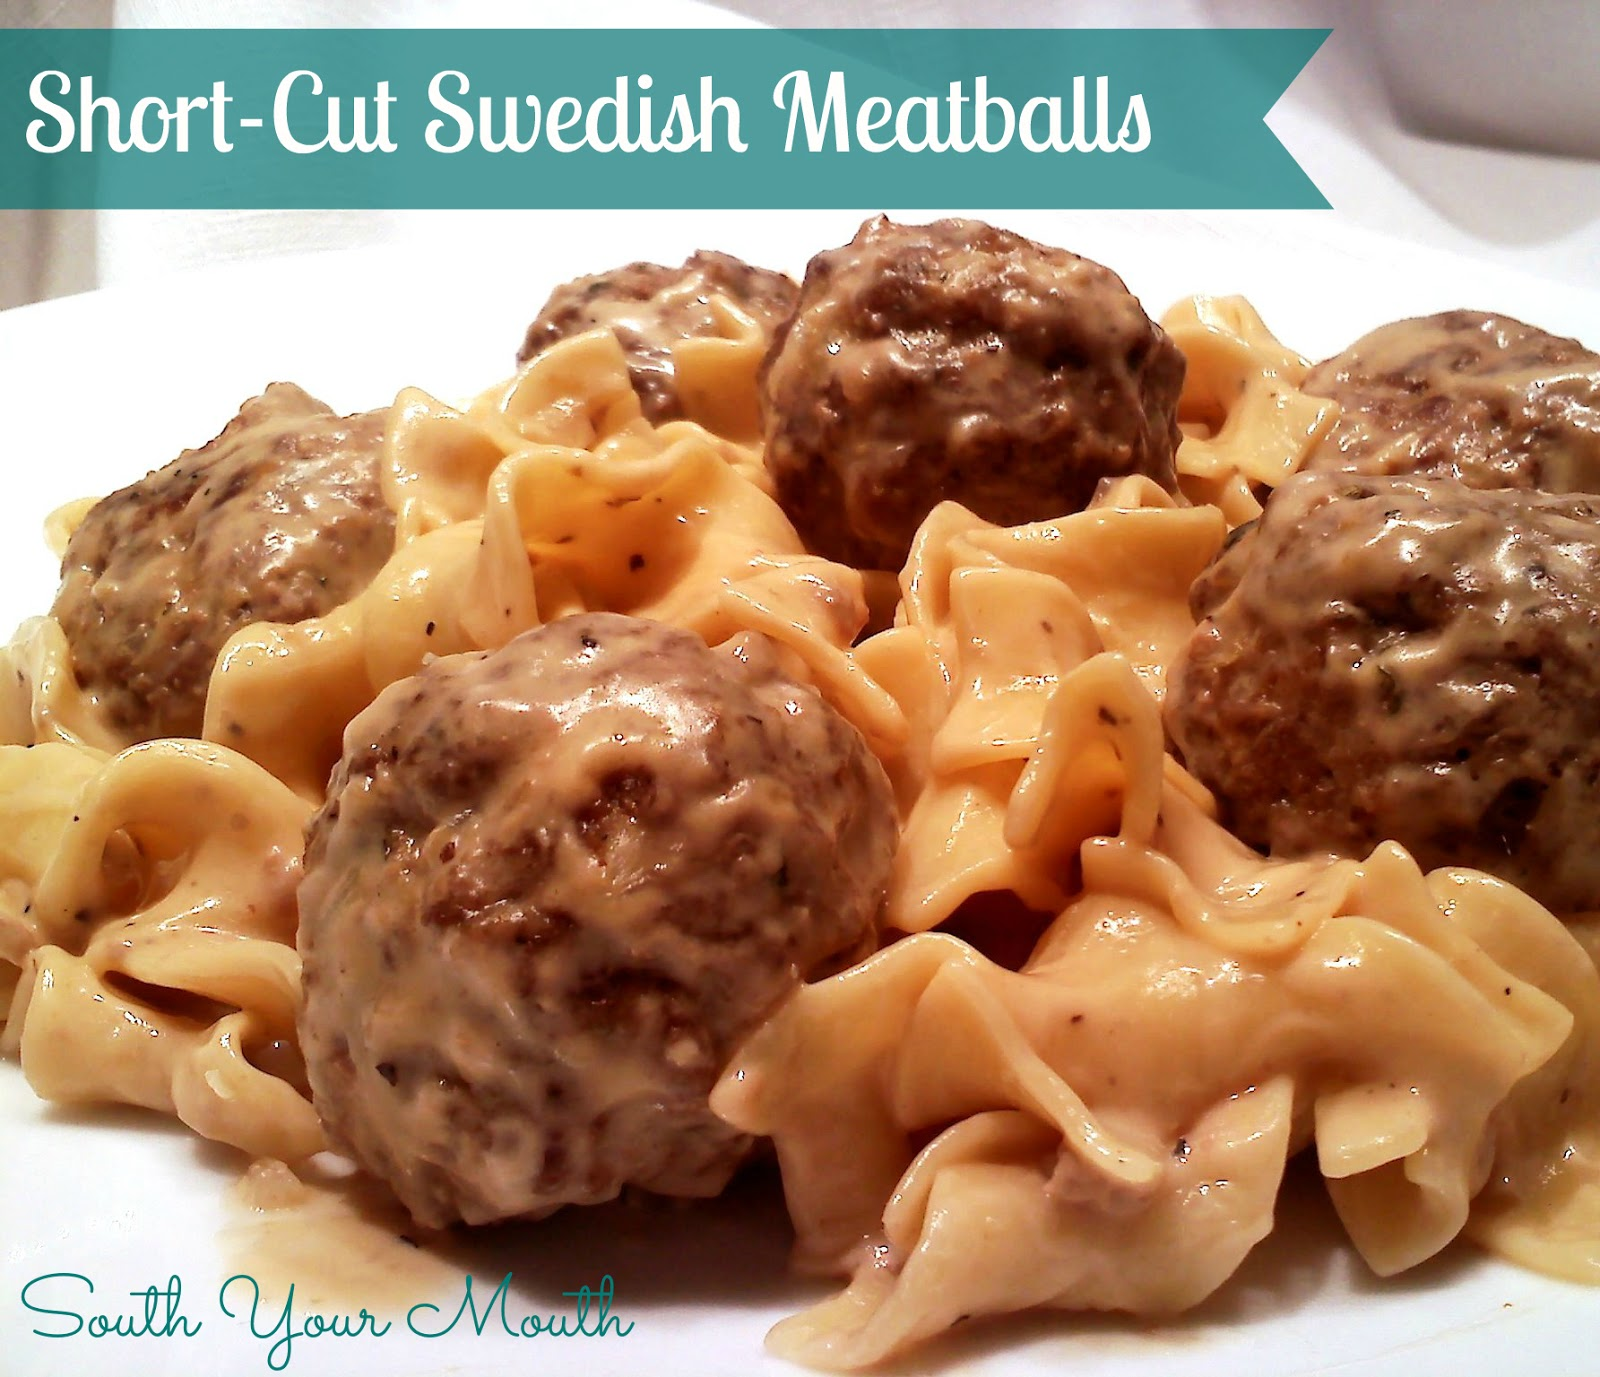 Feb 22,  · Swedish Meatballs over Noodles is one of those delicious, classic recipes that everyone should know how to make! Swedish Meatballs are tender little meatballs made from ground beef and pork that are first browned in a skillet, then smothered in a creamy, super flavorful sauce before being baked in the oven to cook touchbase.mlgs: